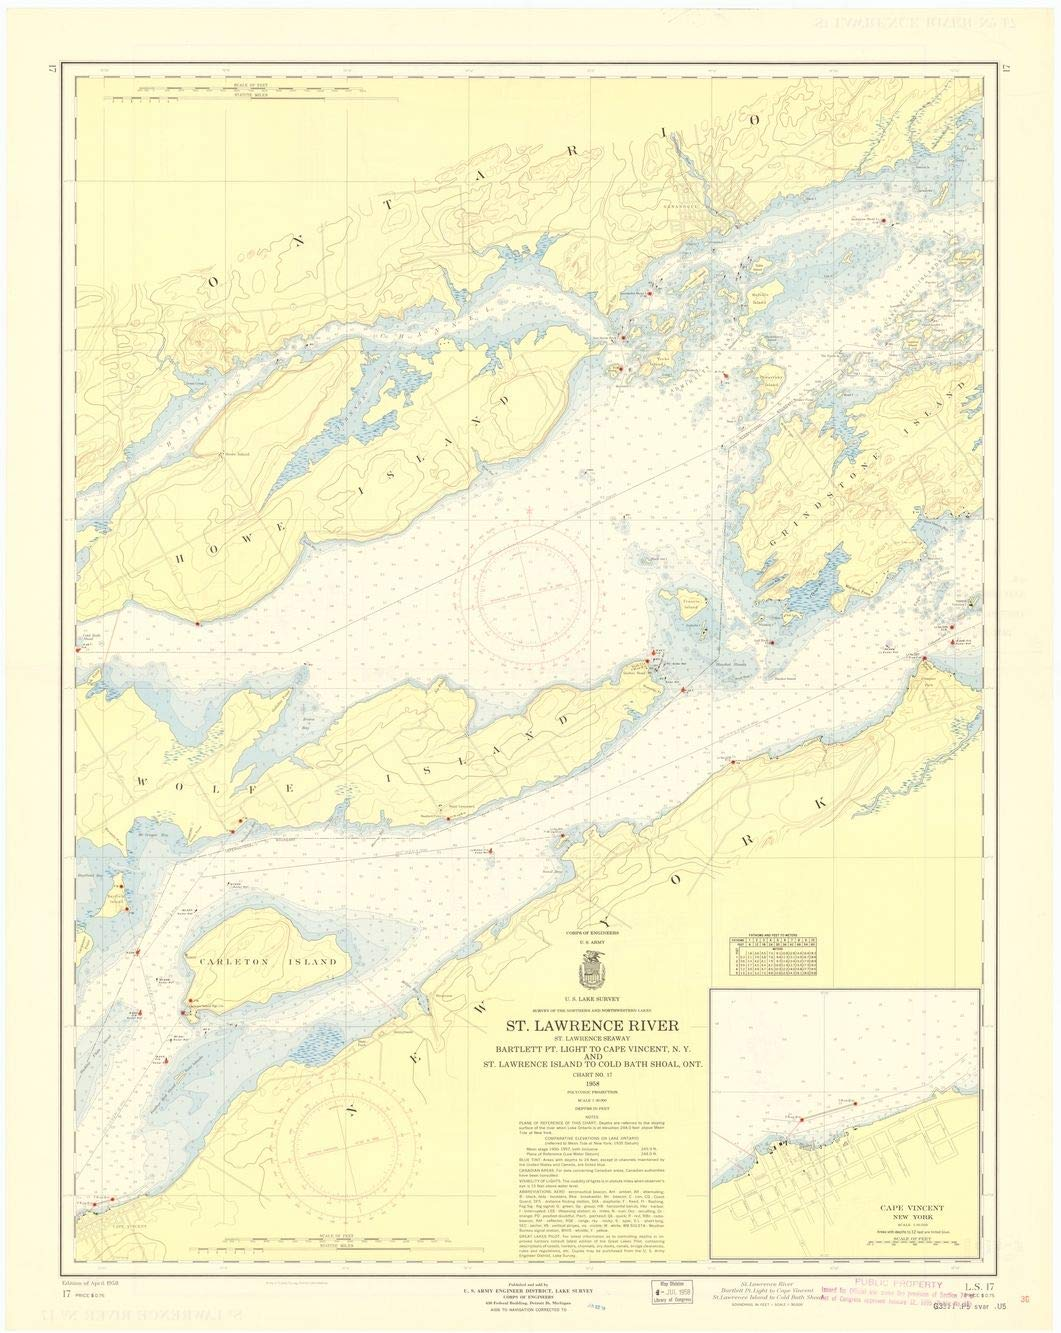 Professionally Reprinted 18 x 24 Image of 1958 Nautical Chart ST. LAWRENCE RIVER, ST. LAWRENCE SEAWAY, BARTLETT PT. LIGHT TO CAPE VINCENT, N.Y. AND ST. LAWRENCE ISLAND TO COLD BATH SHOAL, ONT. by Lak